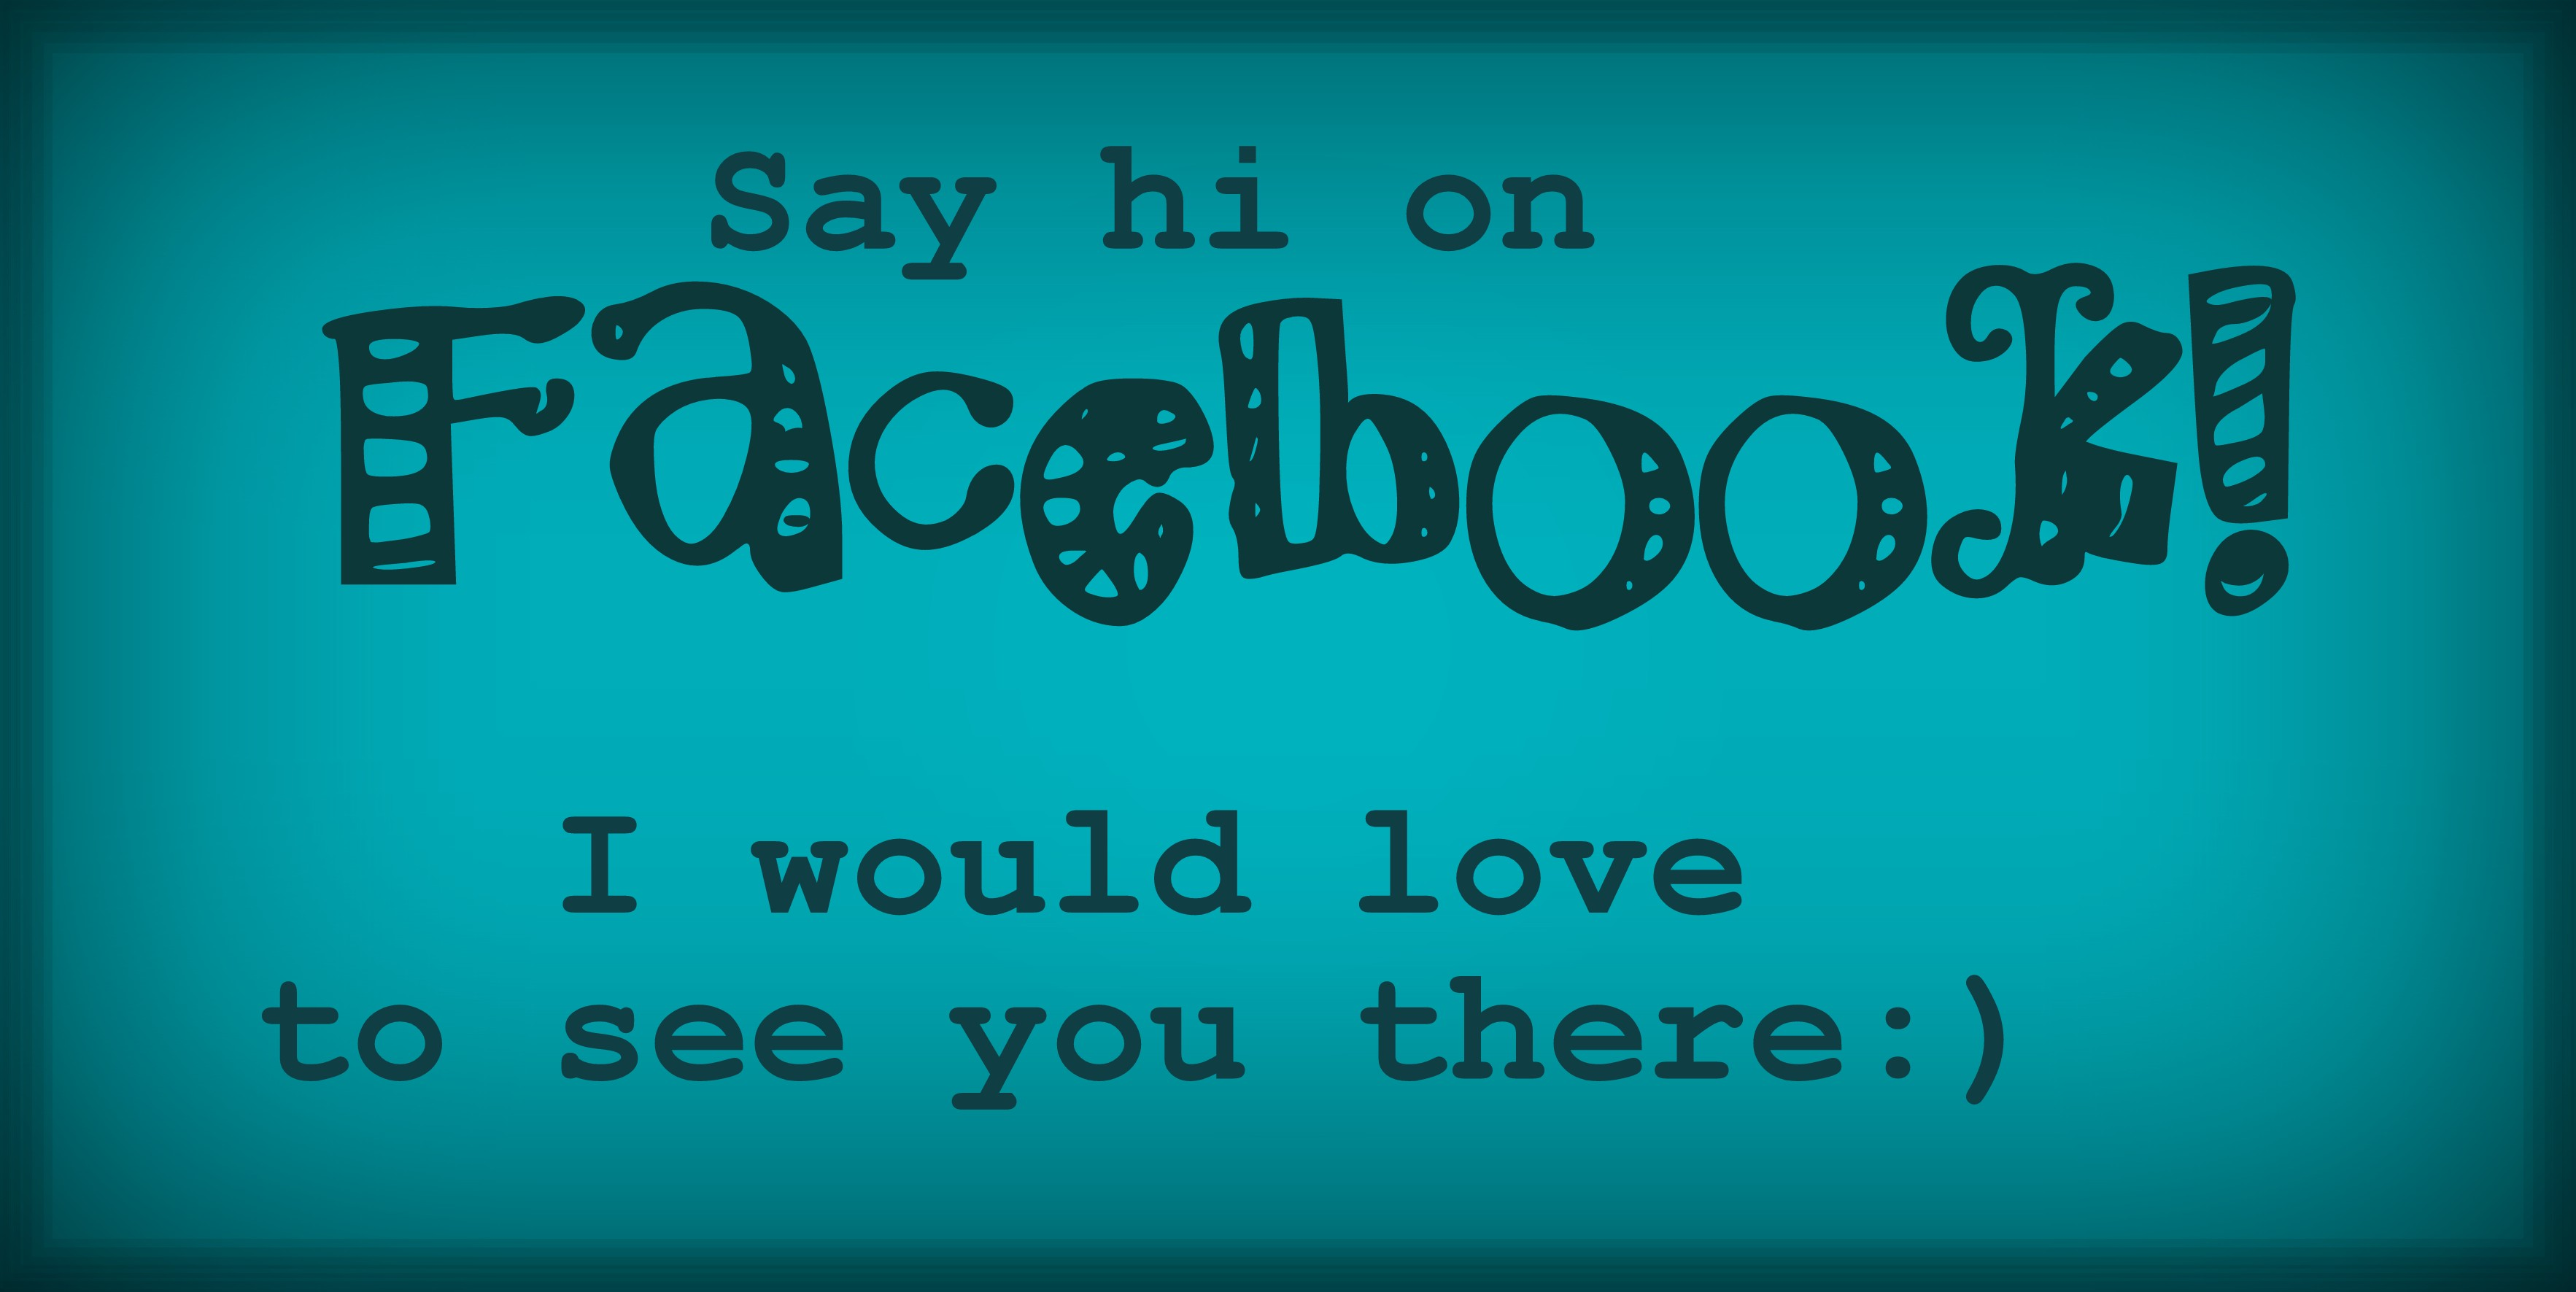 Say hi on Facebook! I would love to see you there:)